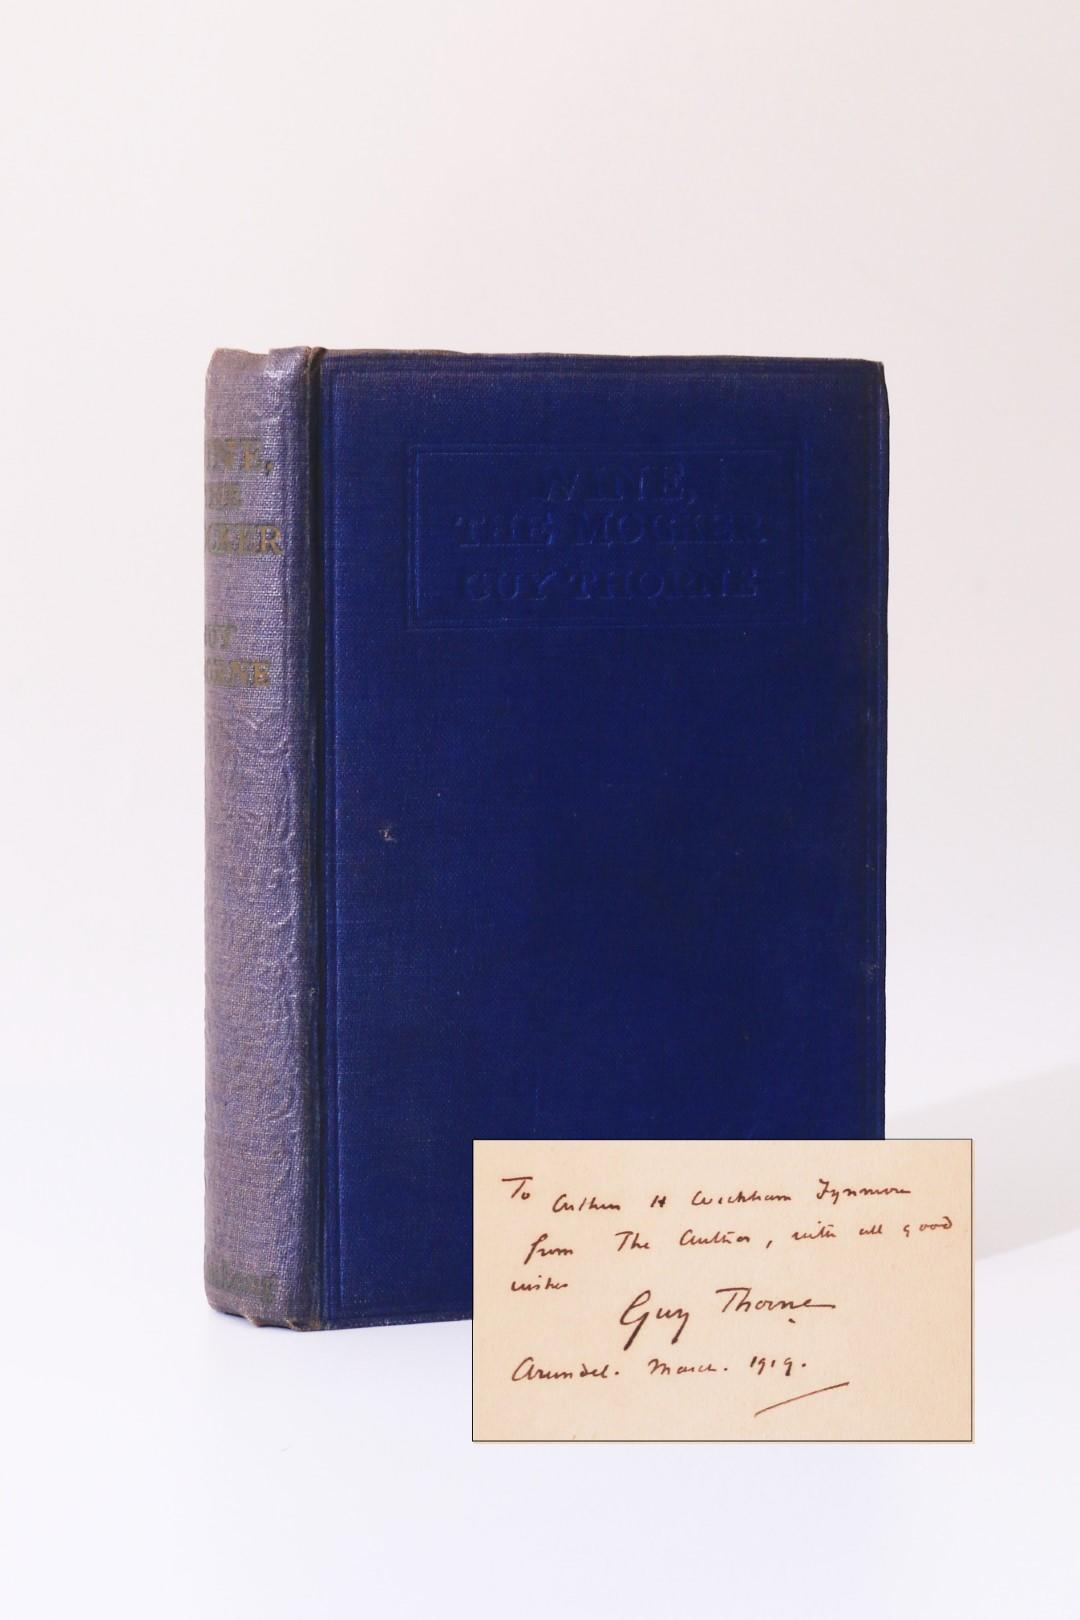 Guy Thorne - Wine the Mocker - John Long, n.d. [1919], Signed First Edition.